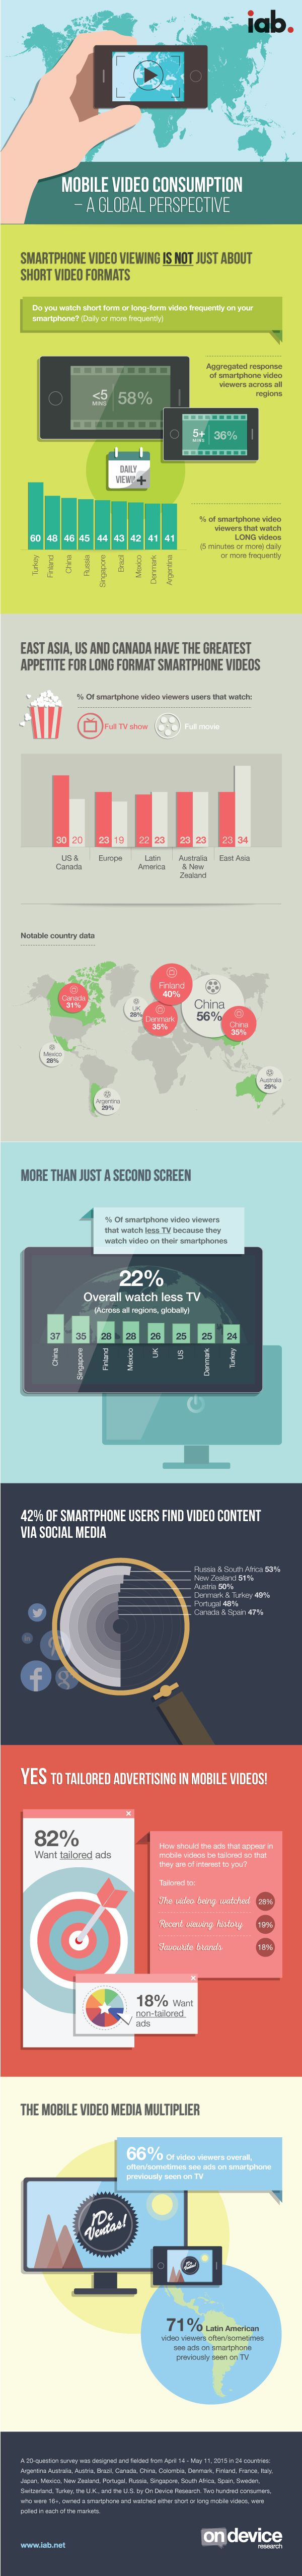 Mobile Video Consumption A Global Perspective